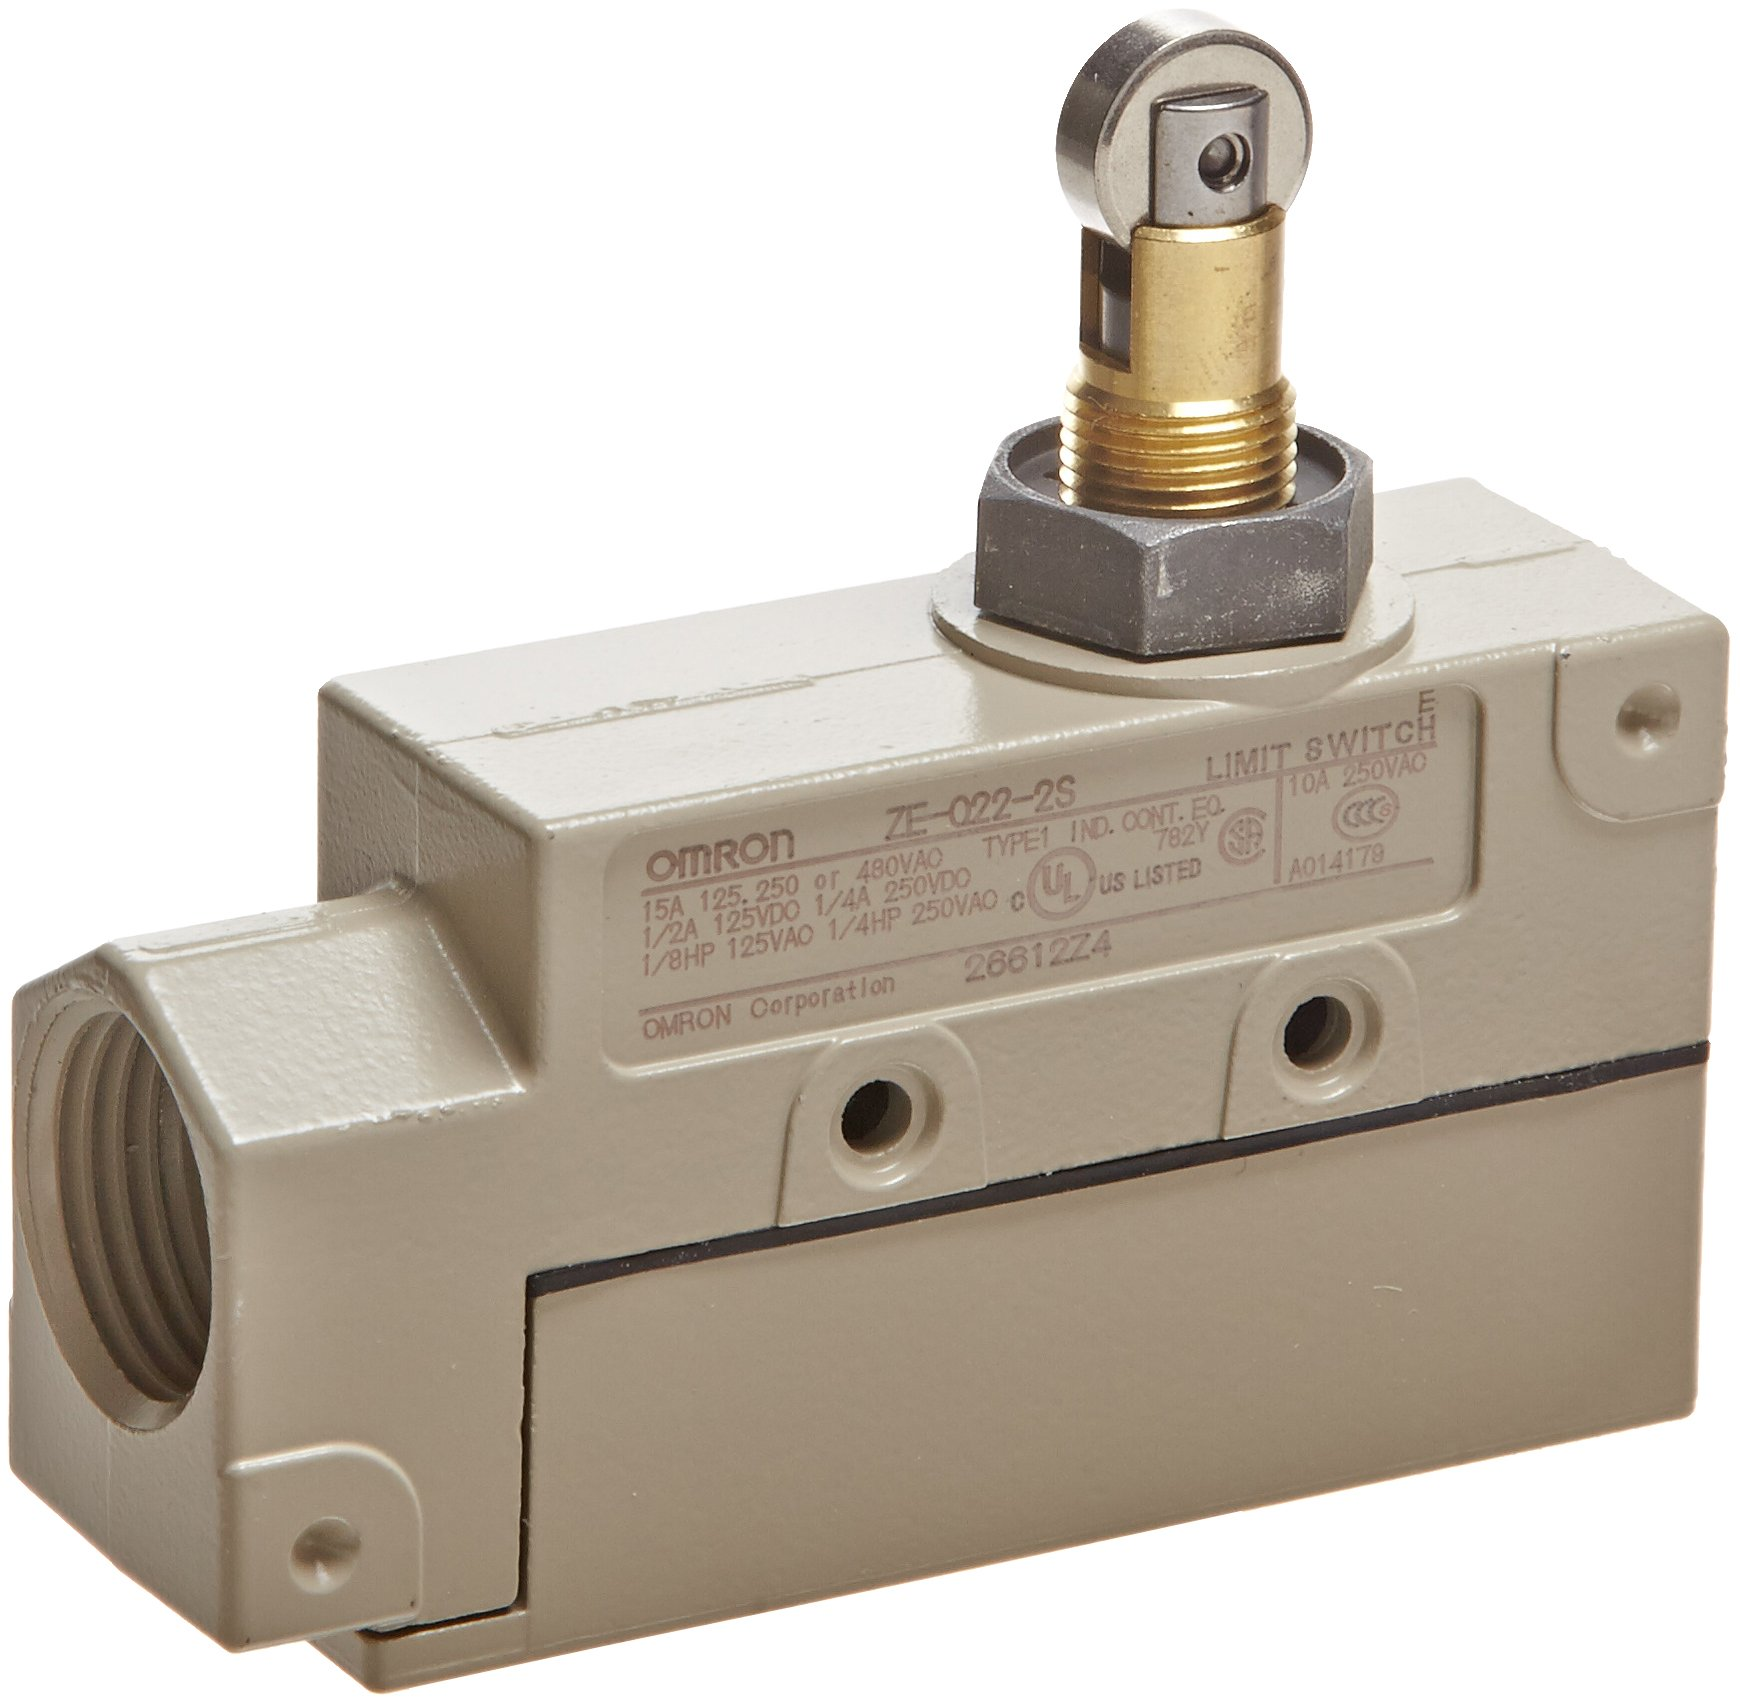 Omron ZE-Q22-2S General Purpose Enclose Switch, High Breaking Capacity and Durability, Roller Plunger, Single Pole Double Throw AC, Side Mounting, 1/2-14NPSM Conduit Size